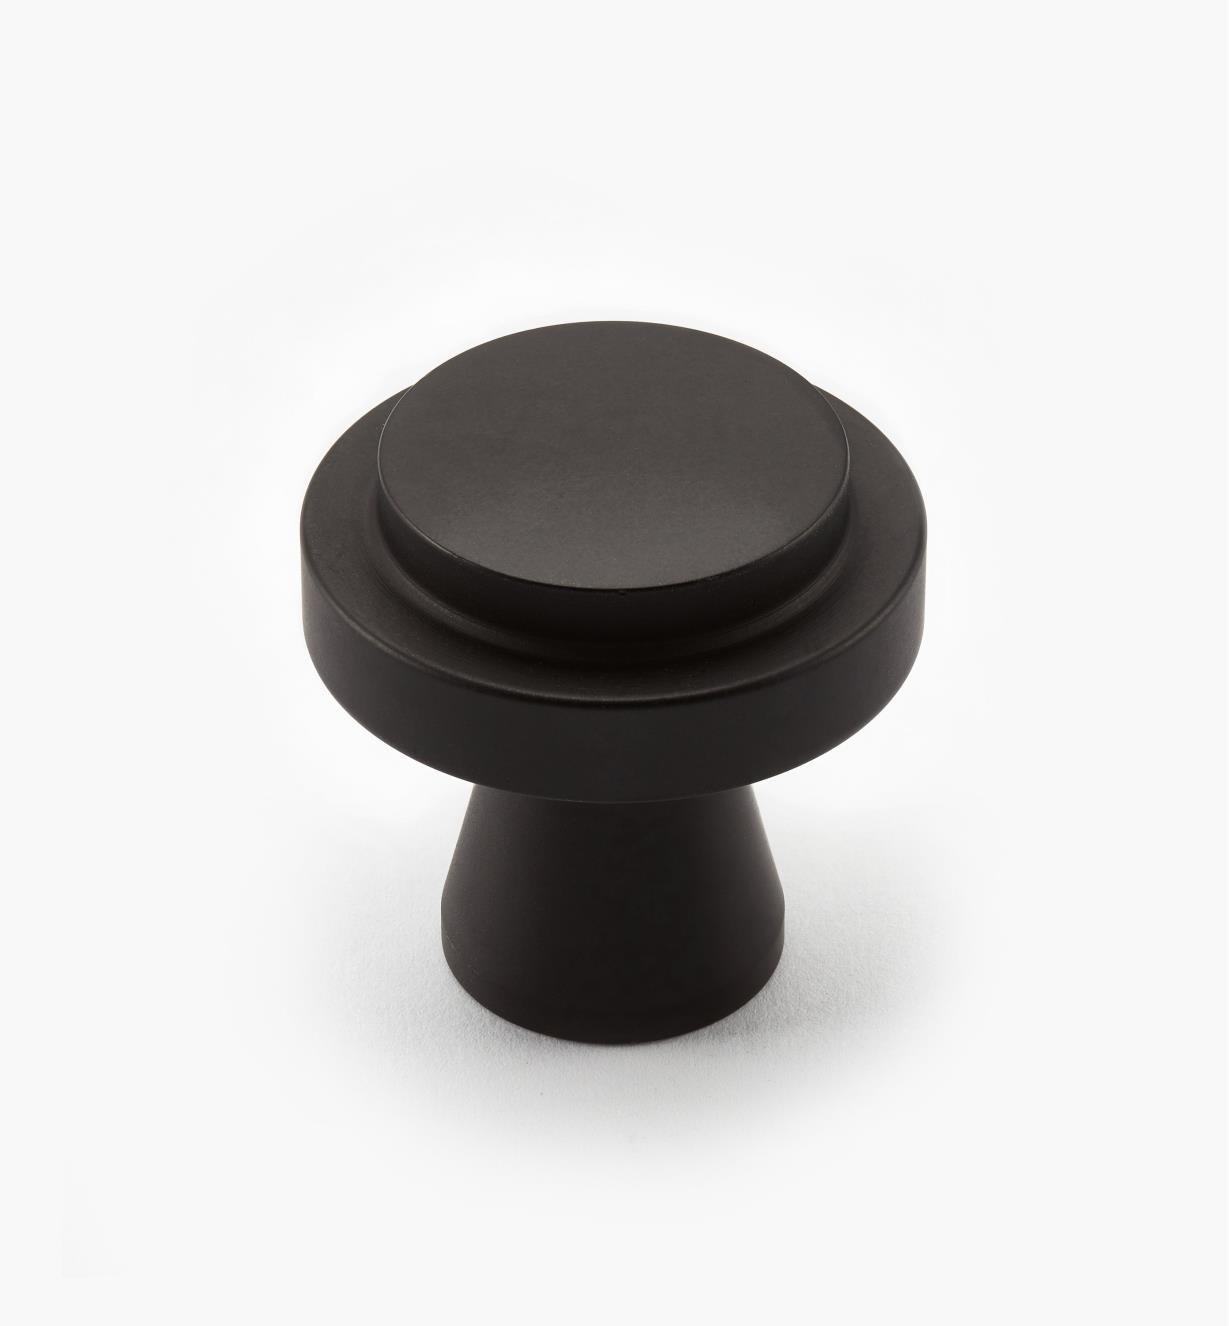 00W0714 - Concerto Hardware - 35mm x 35mm Oil-Rubbed Bronze Knob